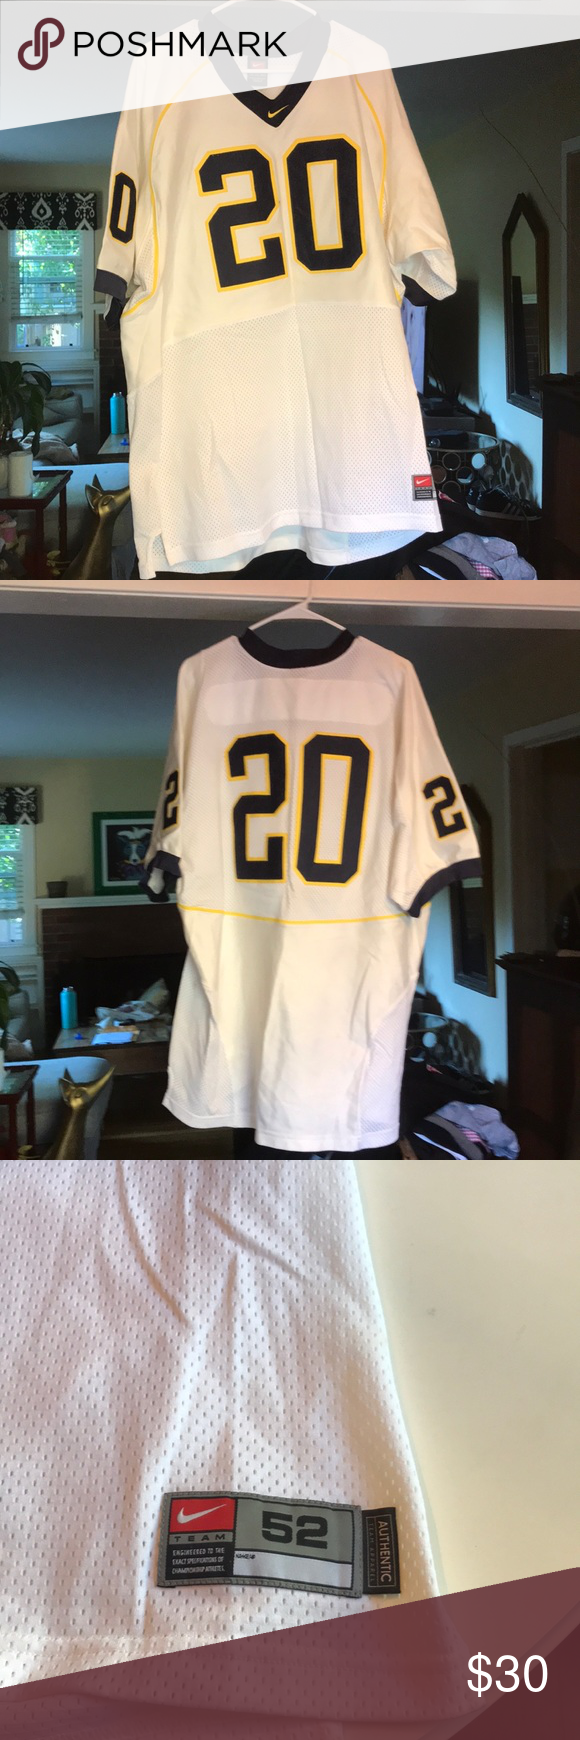 """outlet store fb297 7746e Nike """"Michigan"""" jersey I'm selling my used authentic Nike ..."""